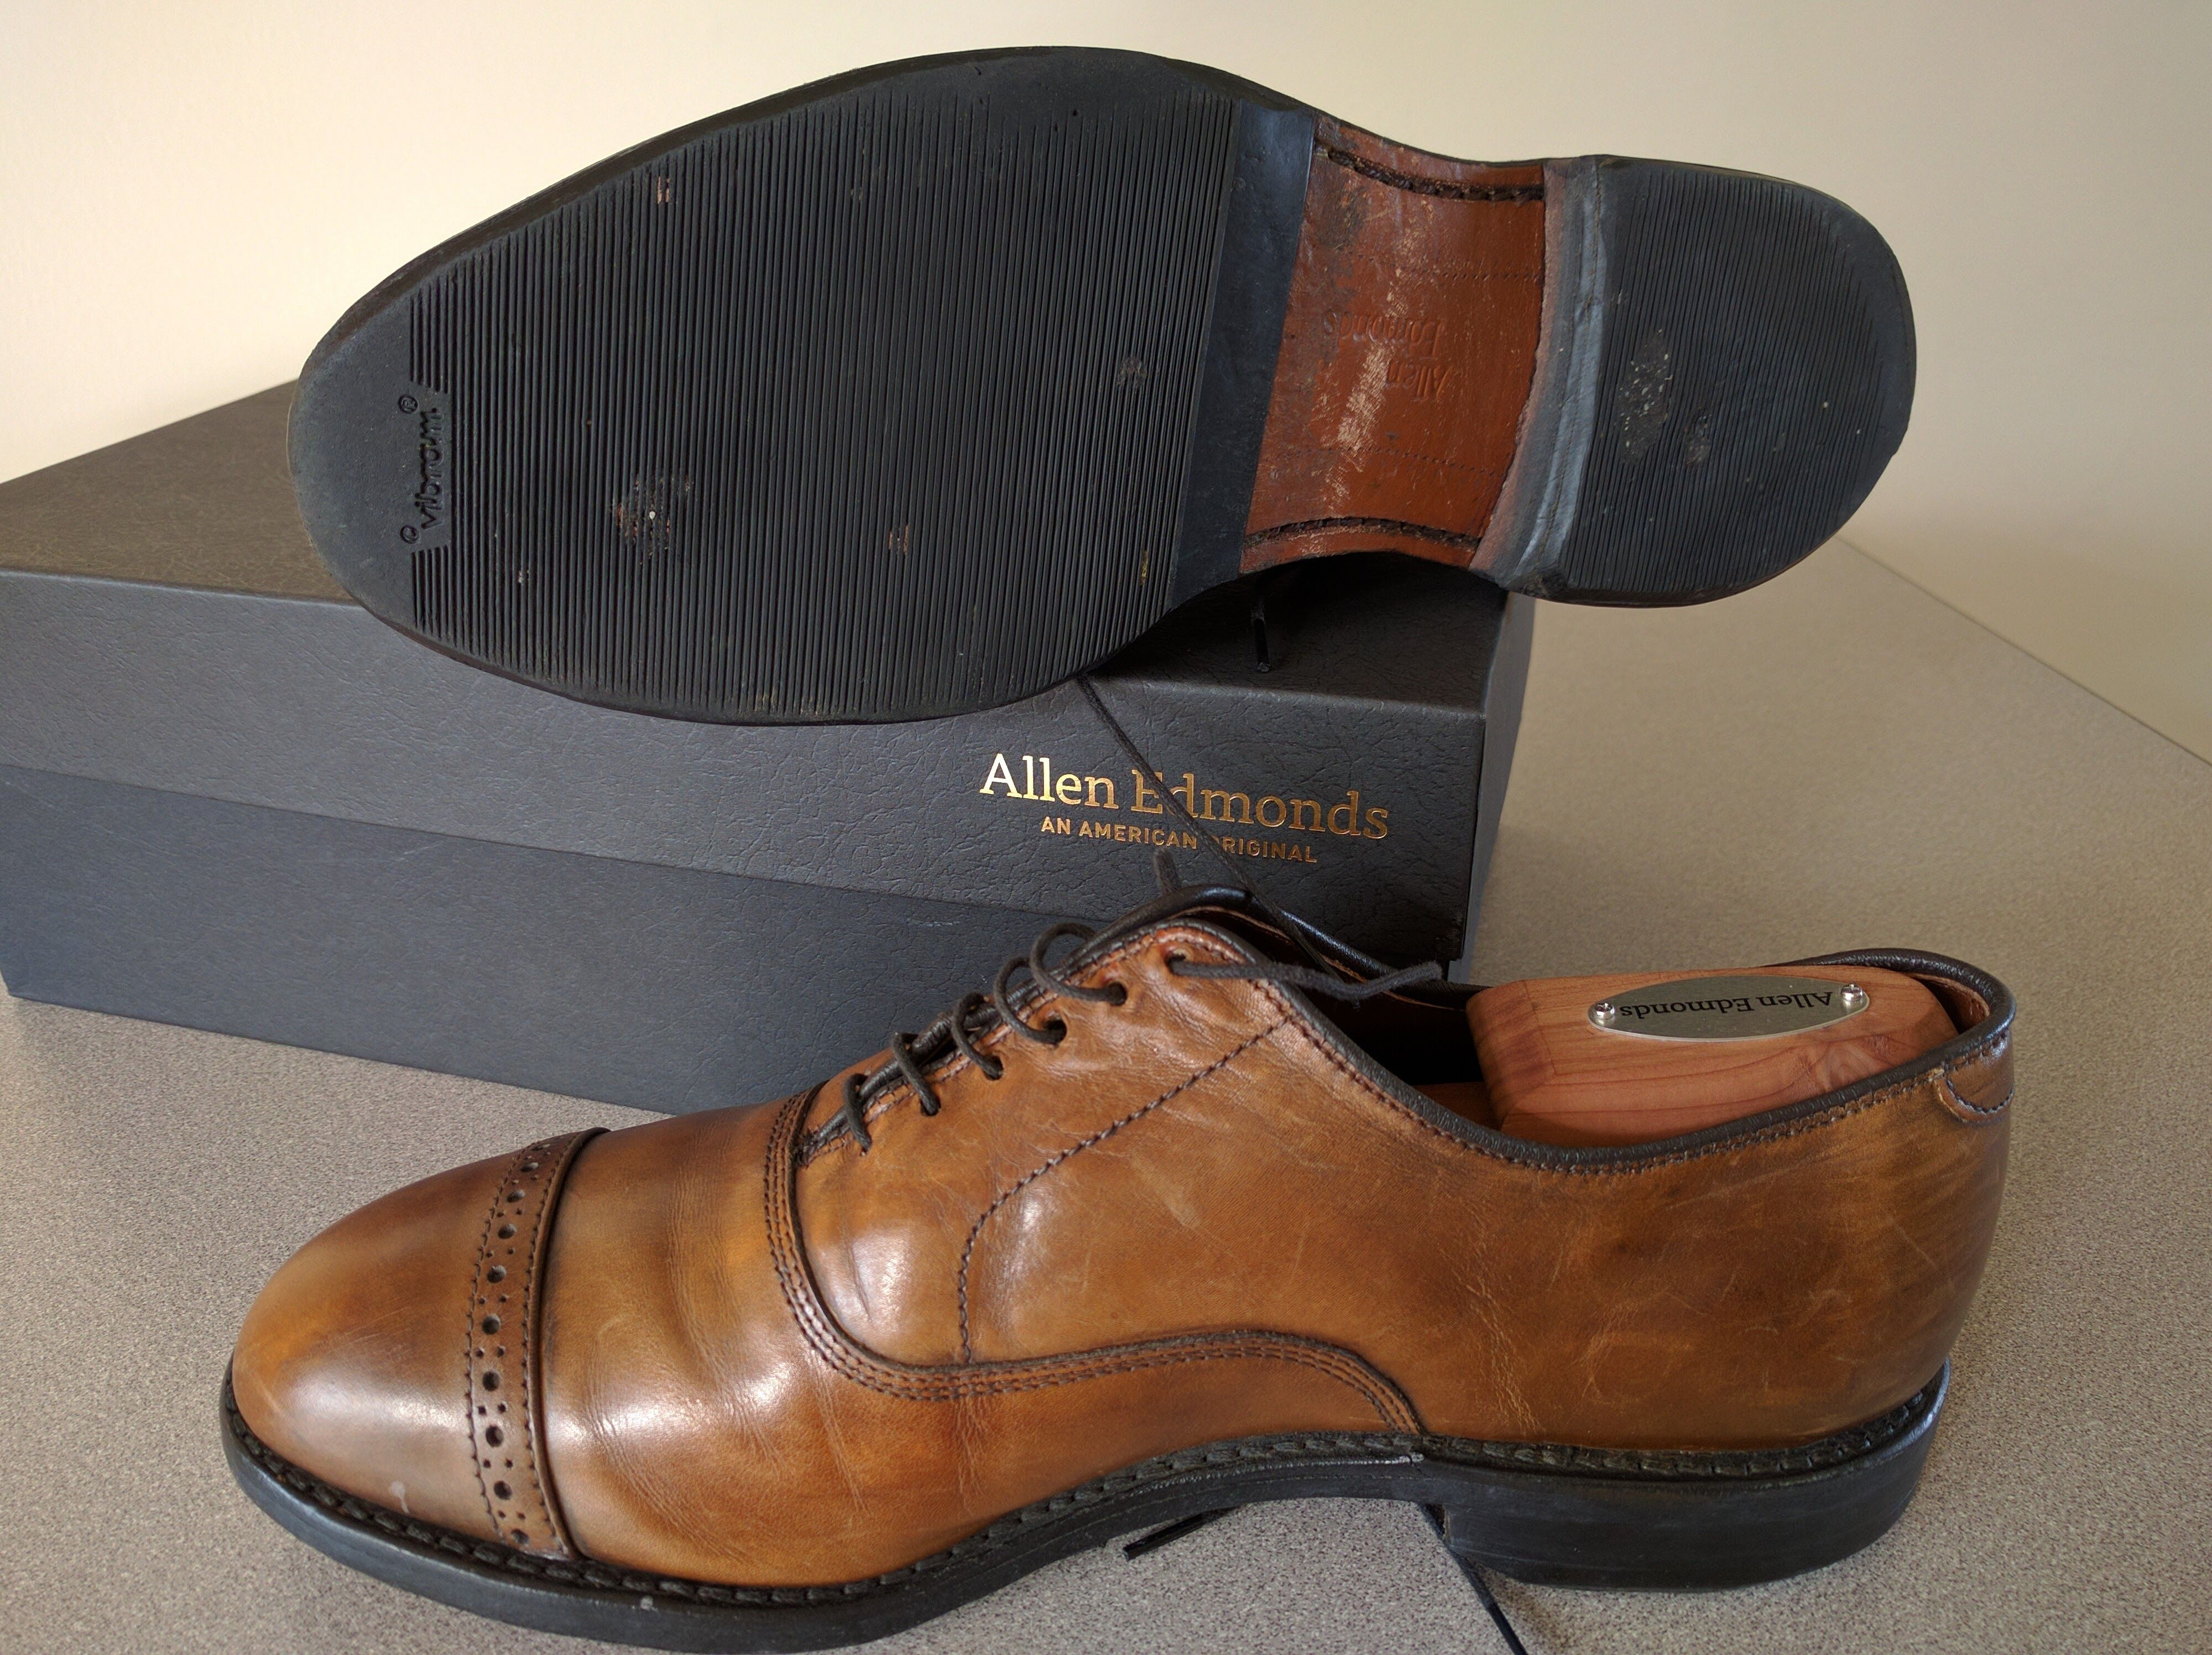 Sole Protectors on Allen Edmonds after 1.5 years #styled247